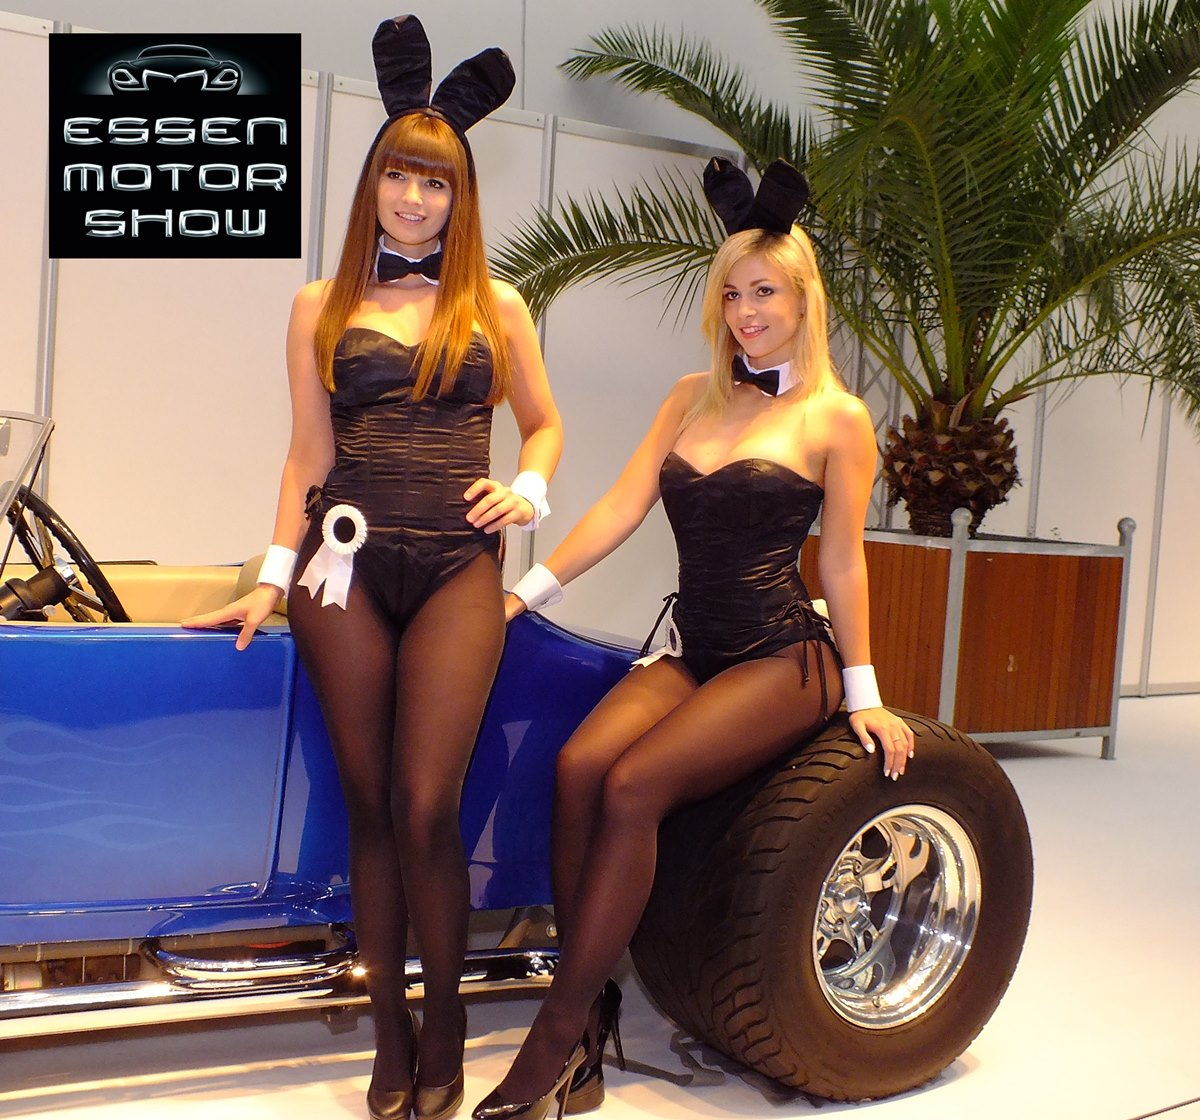 Essen Motor Show 2014 Highlights: die sexy Girls